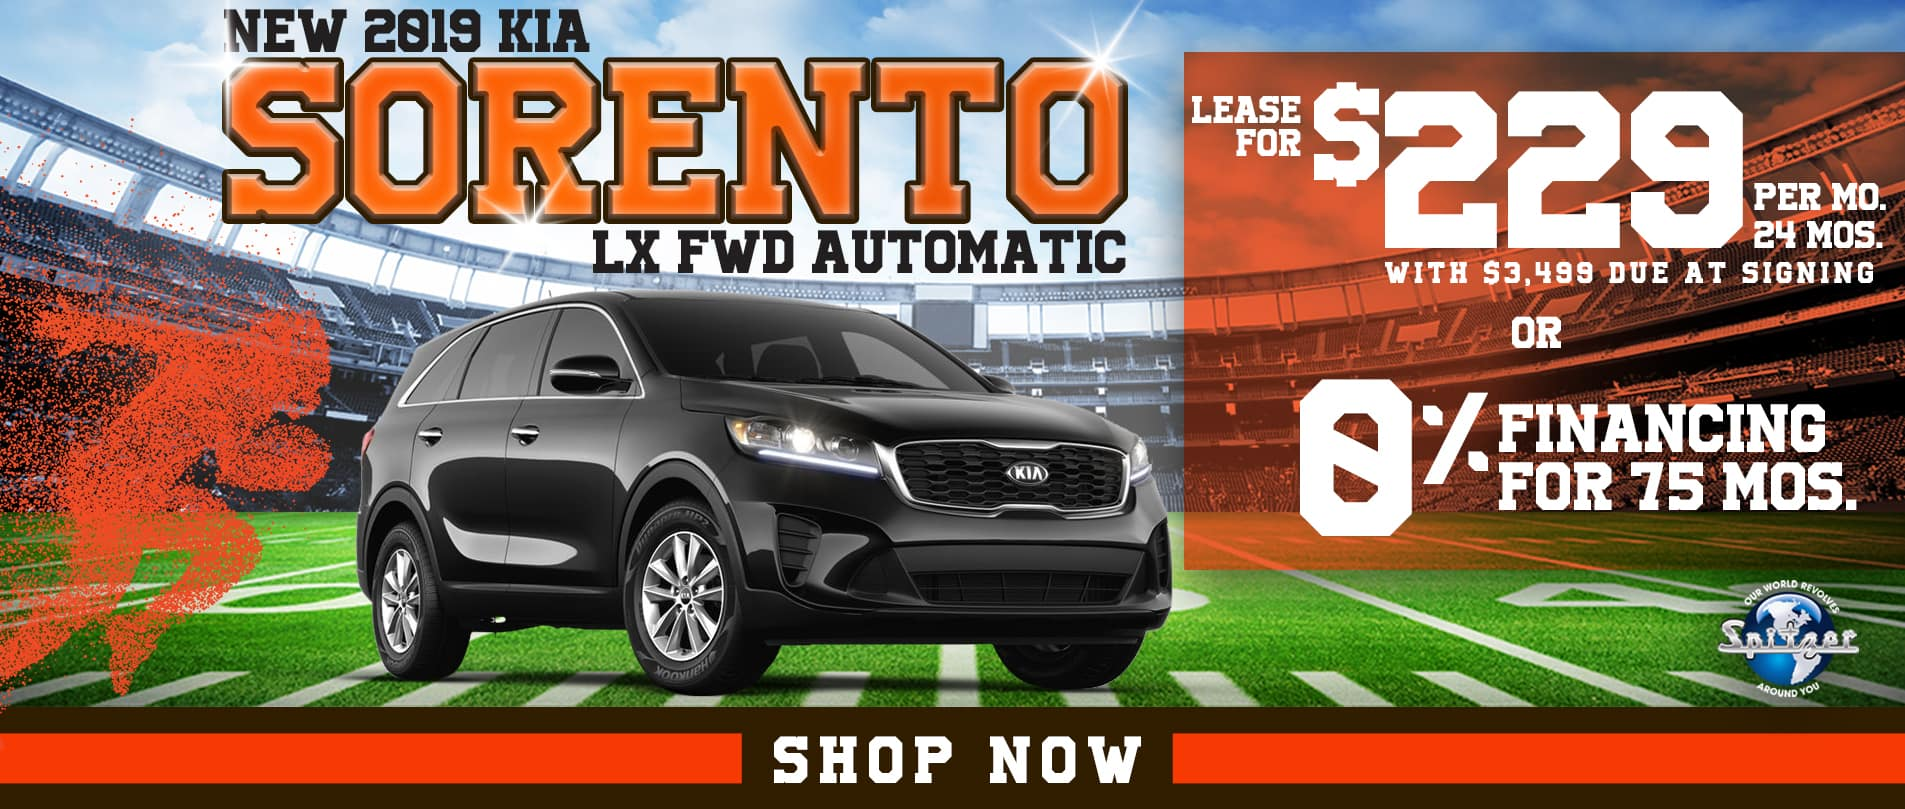 Sorento | Lease for $229 per mo/ 0% financing for 75 mos